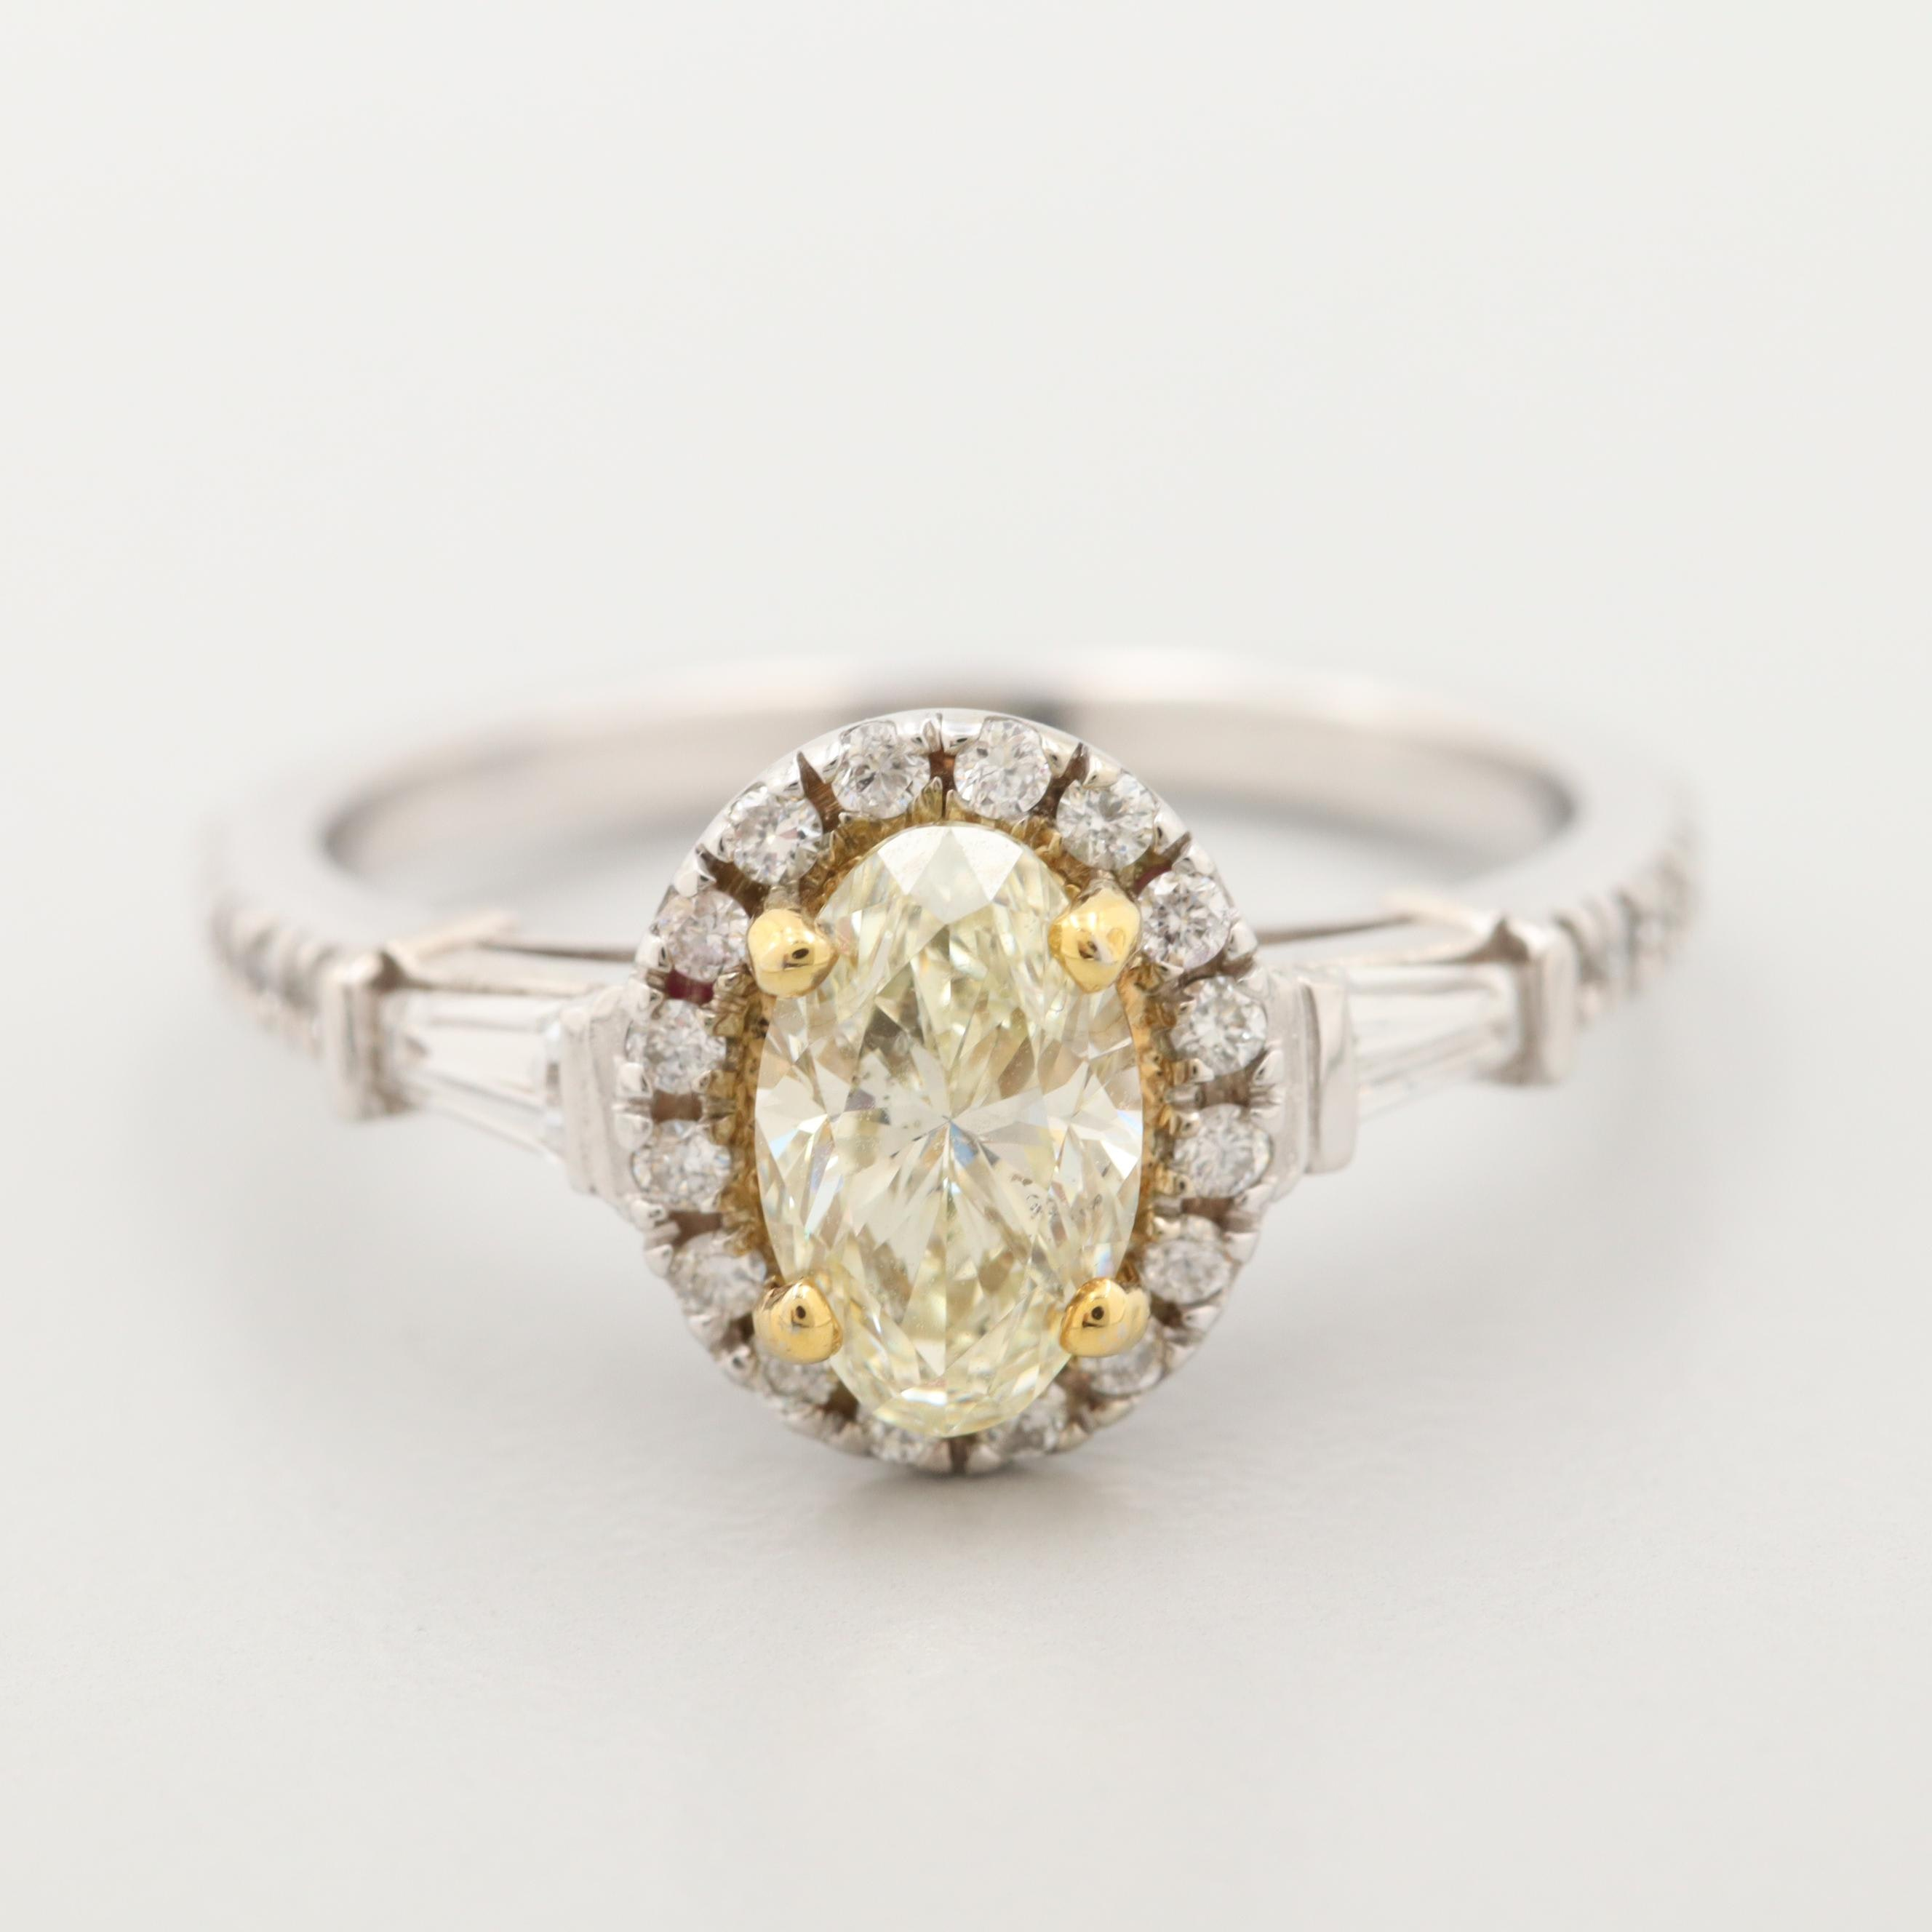 14K White Gold 1.48 CTW Diamond Ring with Yellow Gold Accent